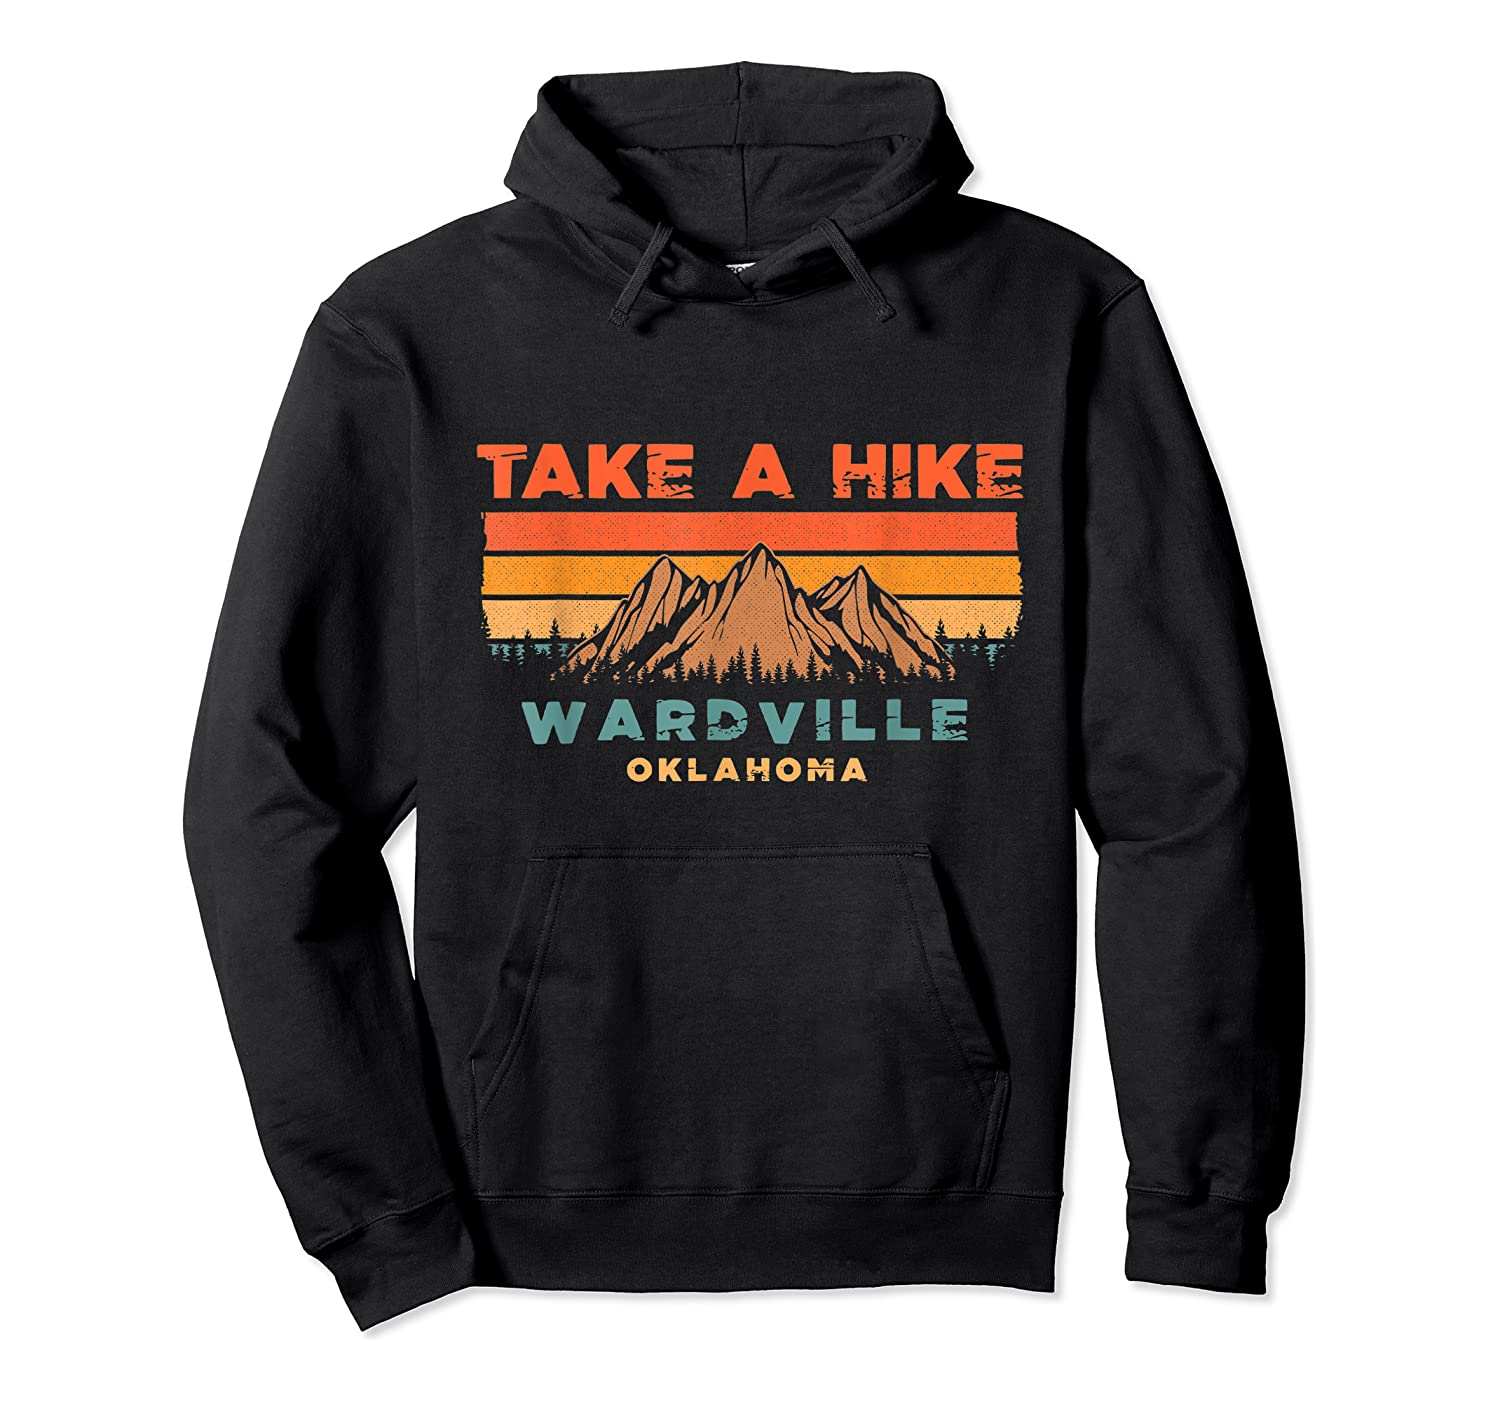 Oklahoma Vintage Take A Hike Wardville Moutain T-shirt Unisex Pullover Hoodie